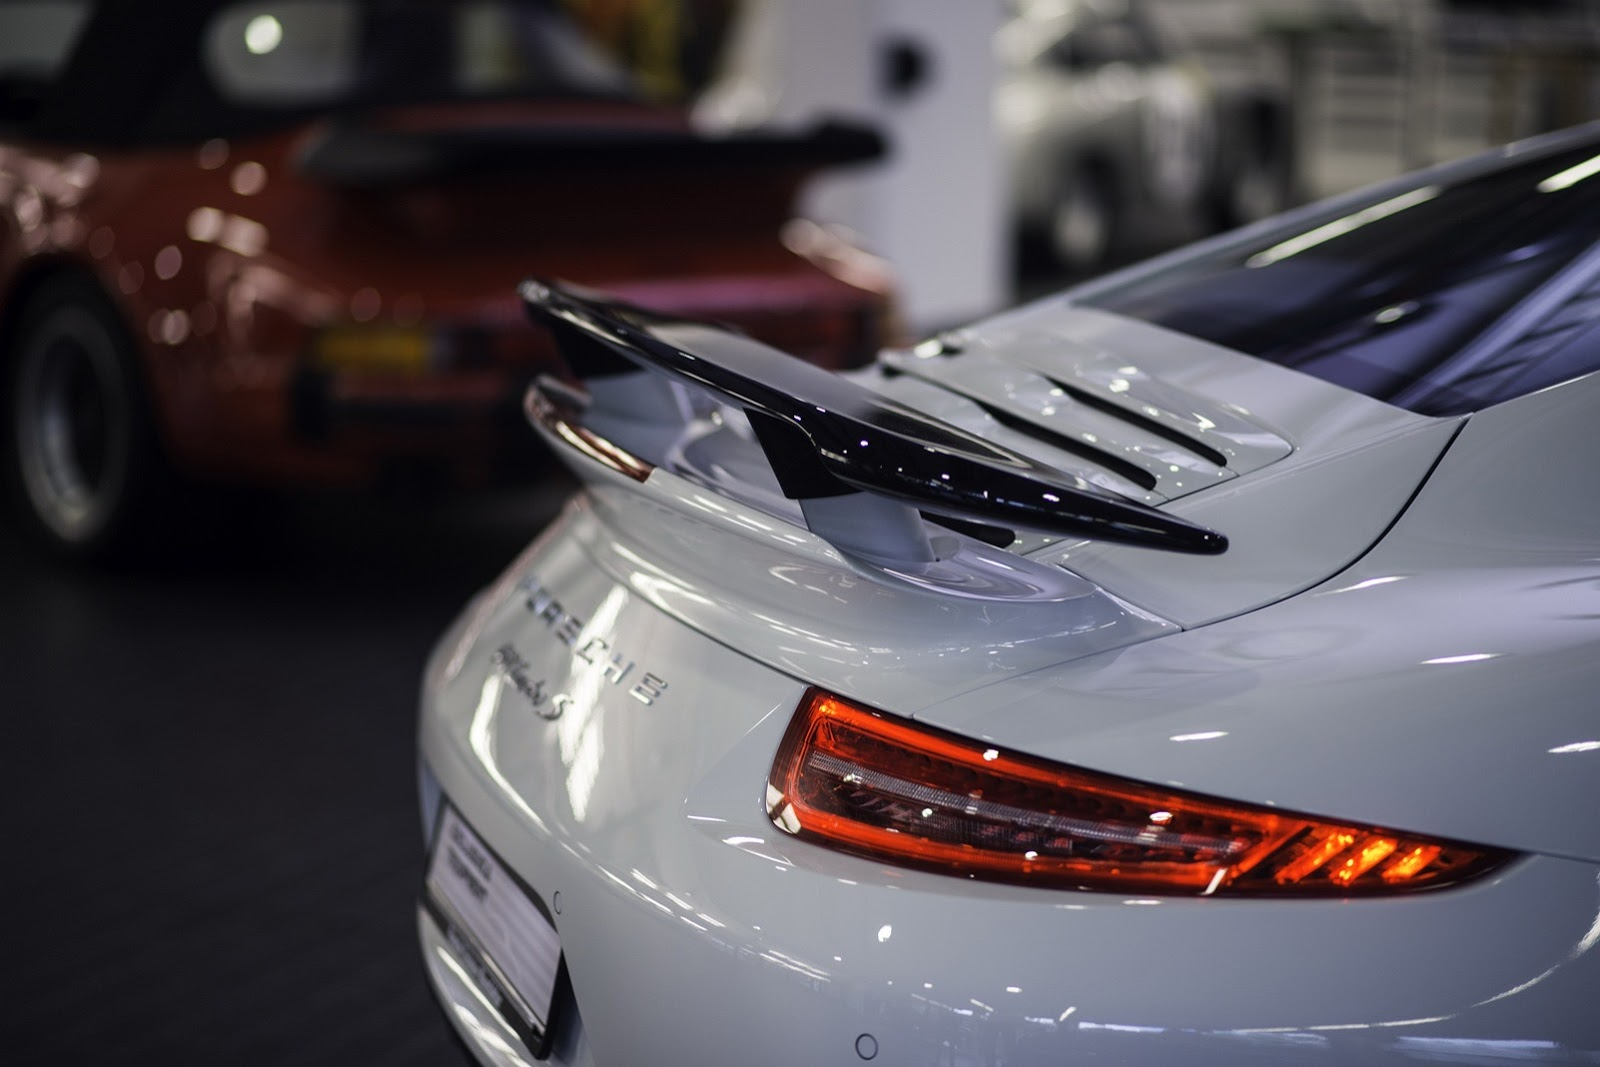 official 2015 porsche exclusive 911 turbo s gb edition